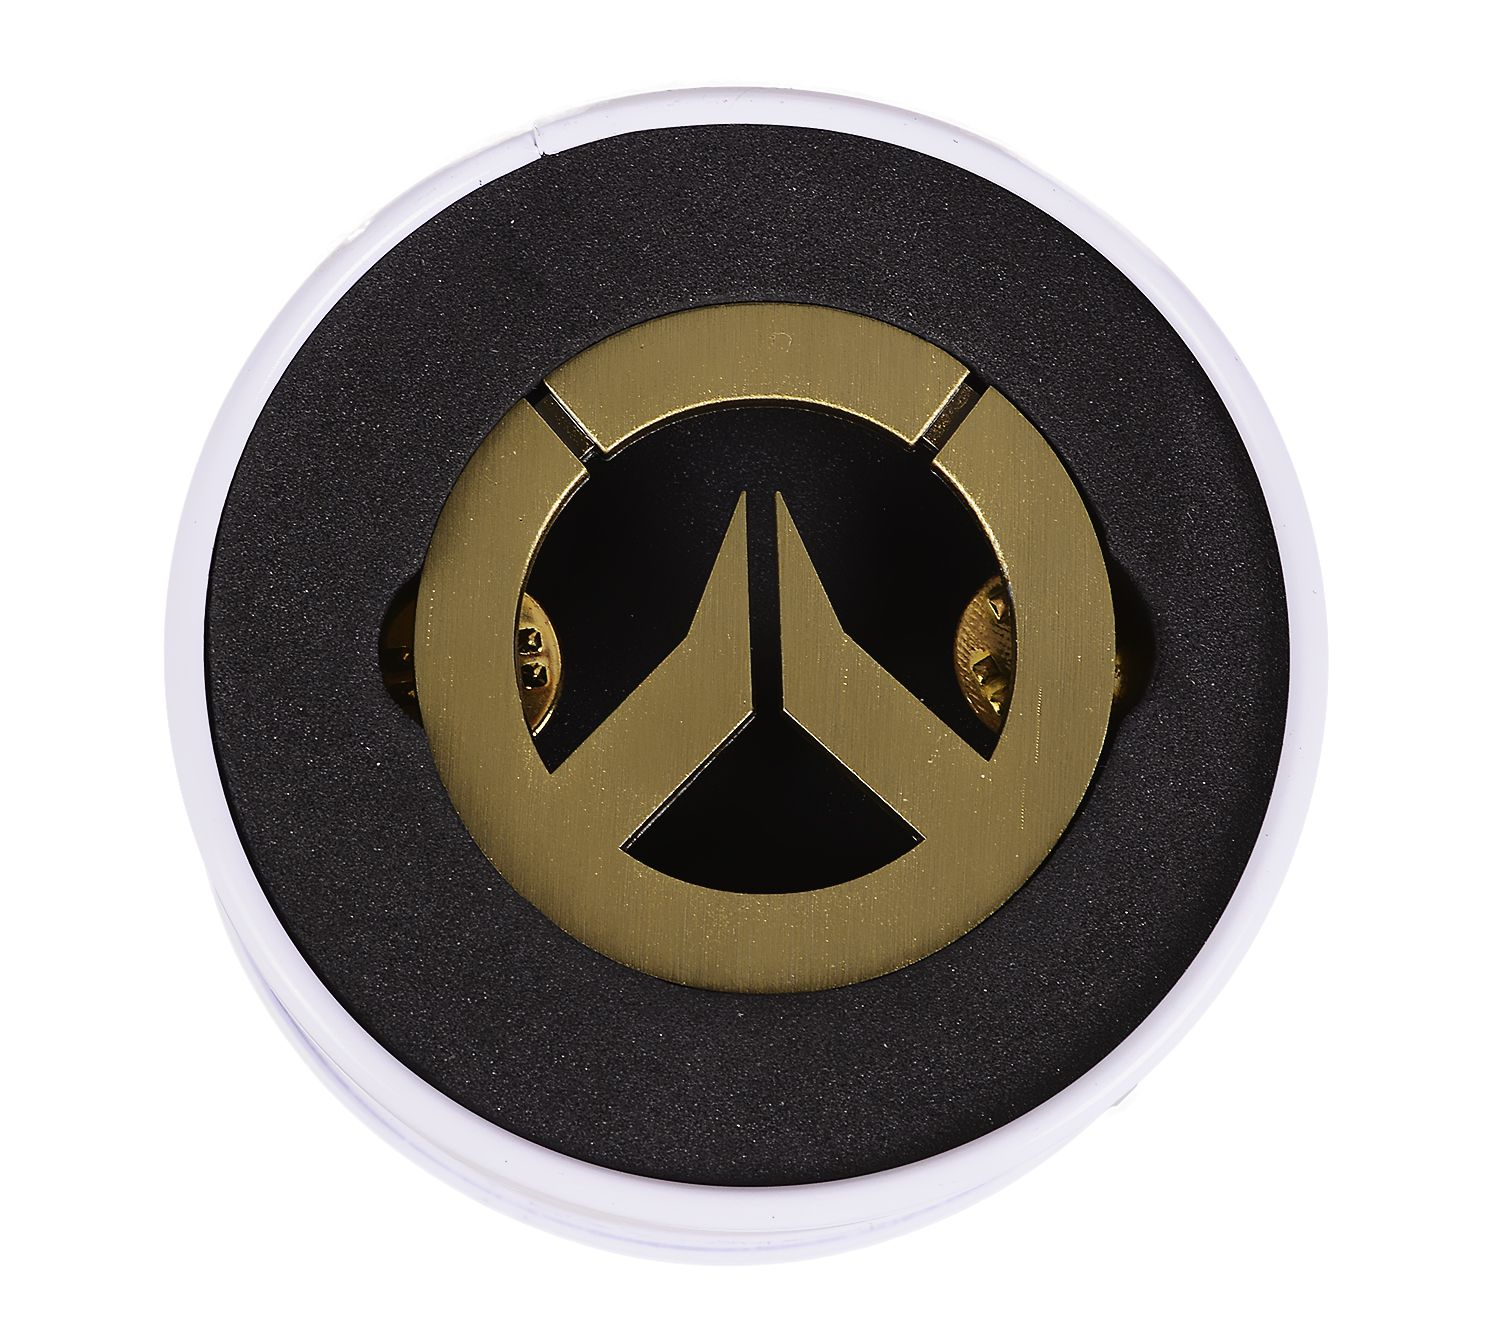 Overwatch Premium Collector's Pin - 4